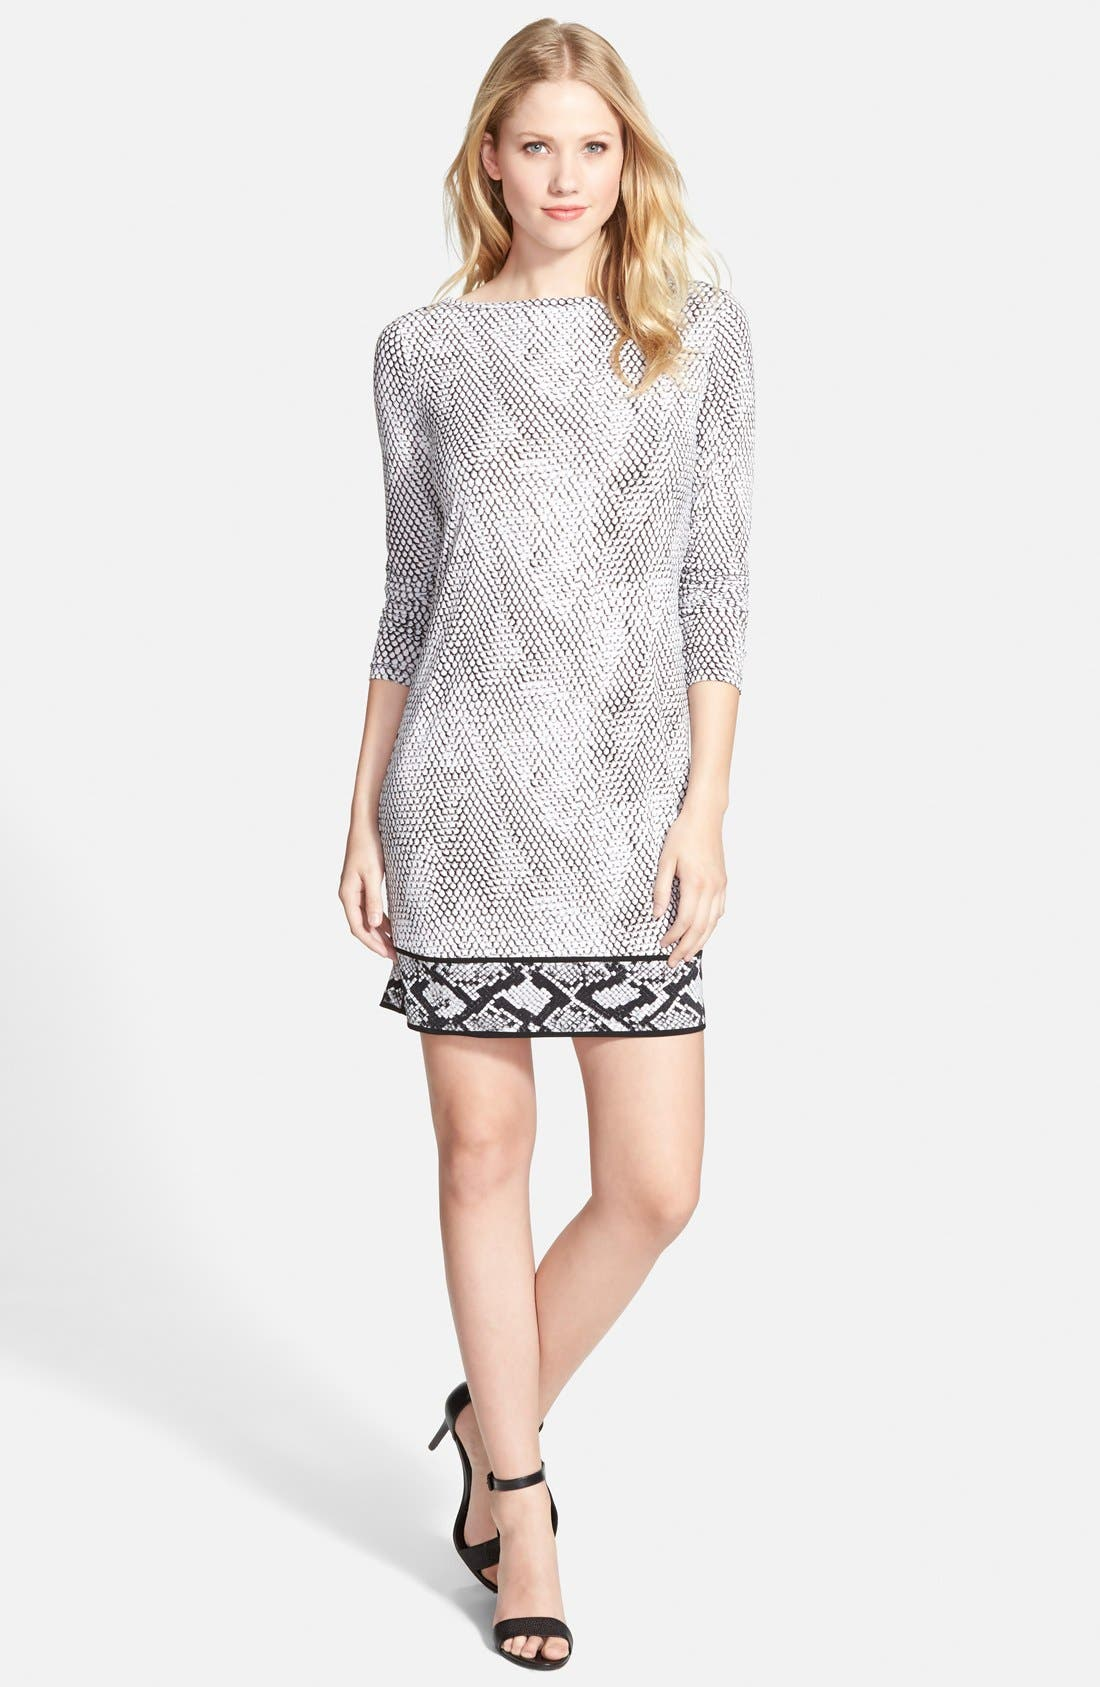 Alternate Image 1 Selected - MICHAEL Michael Kors Snakeskin Border Print Shift Dress (Regular & Petite)